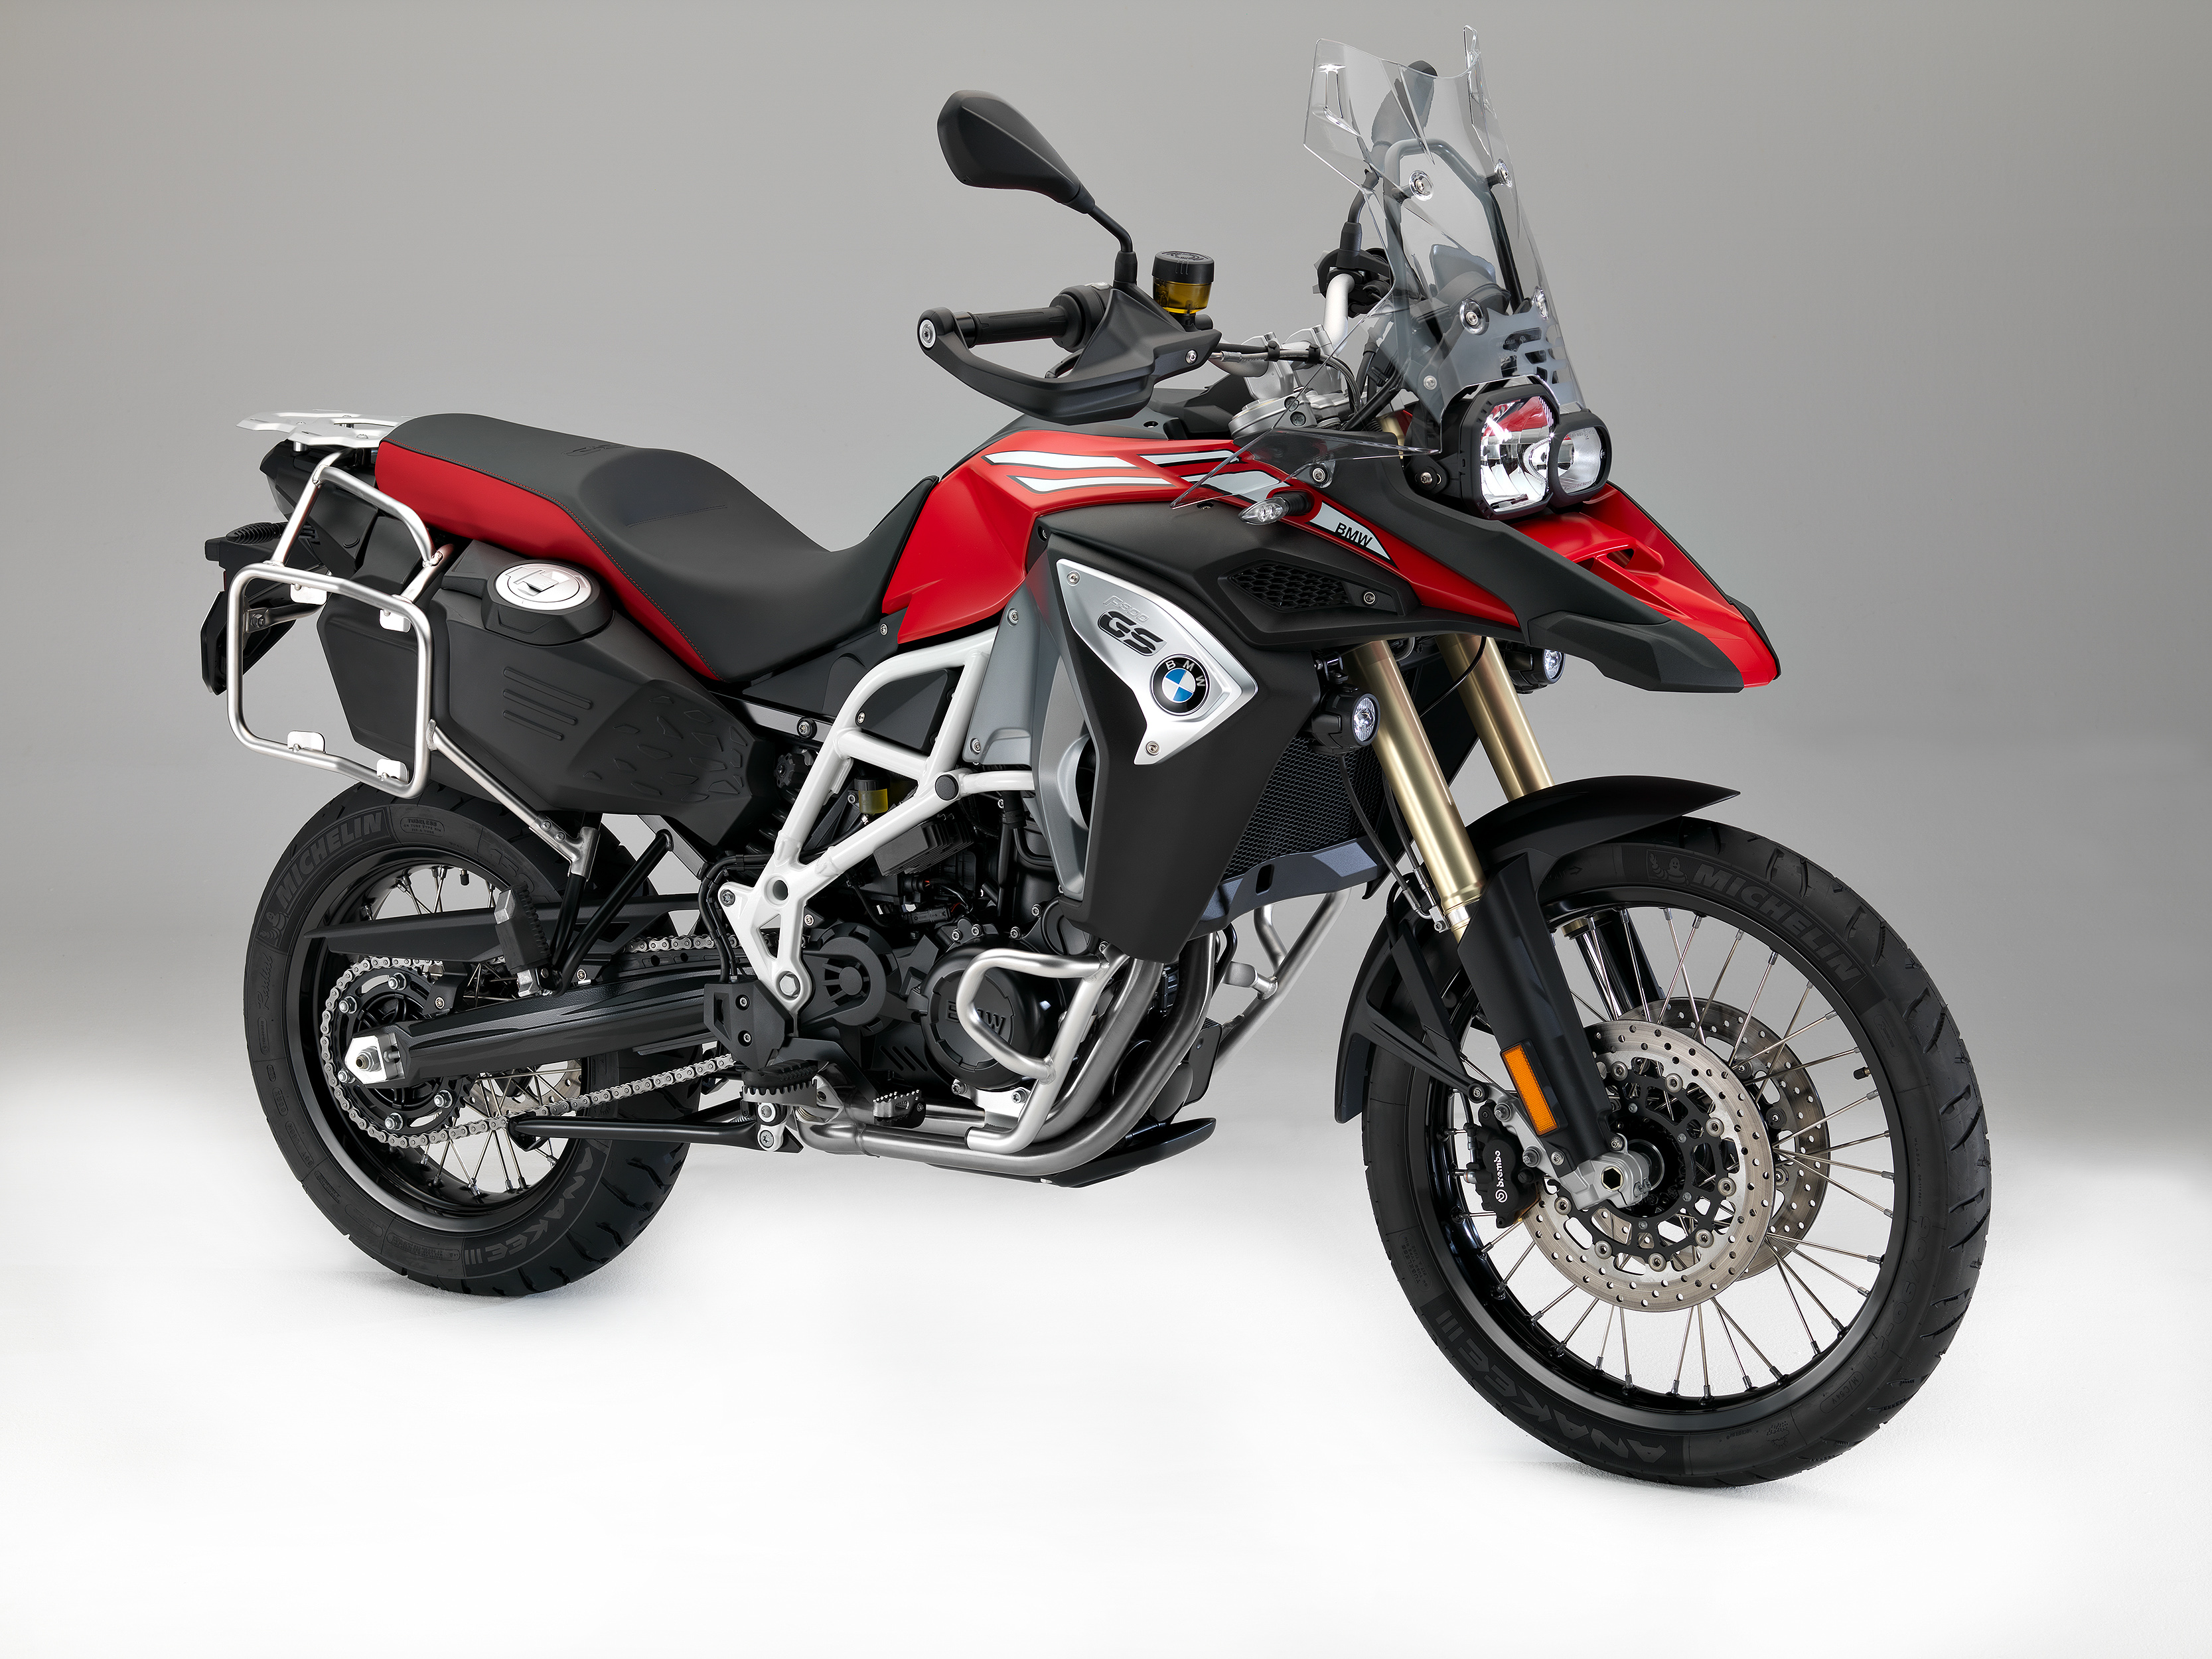 new f 700 gs f 800 gs adventure bike review. Black Bedroom Furniture Sets. Home Design Ideas